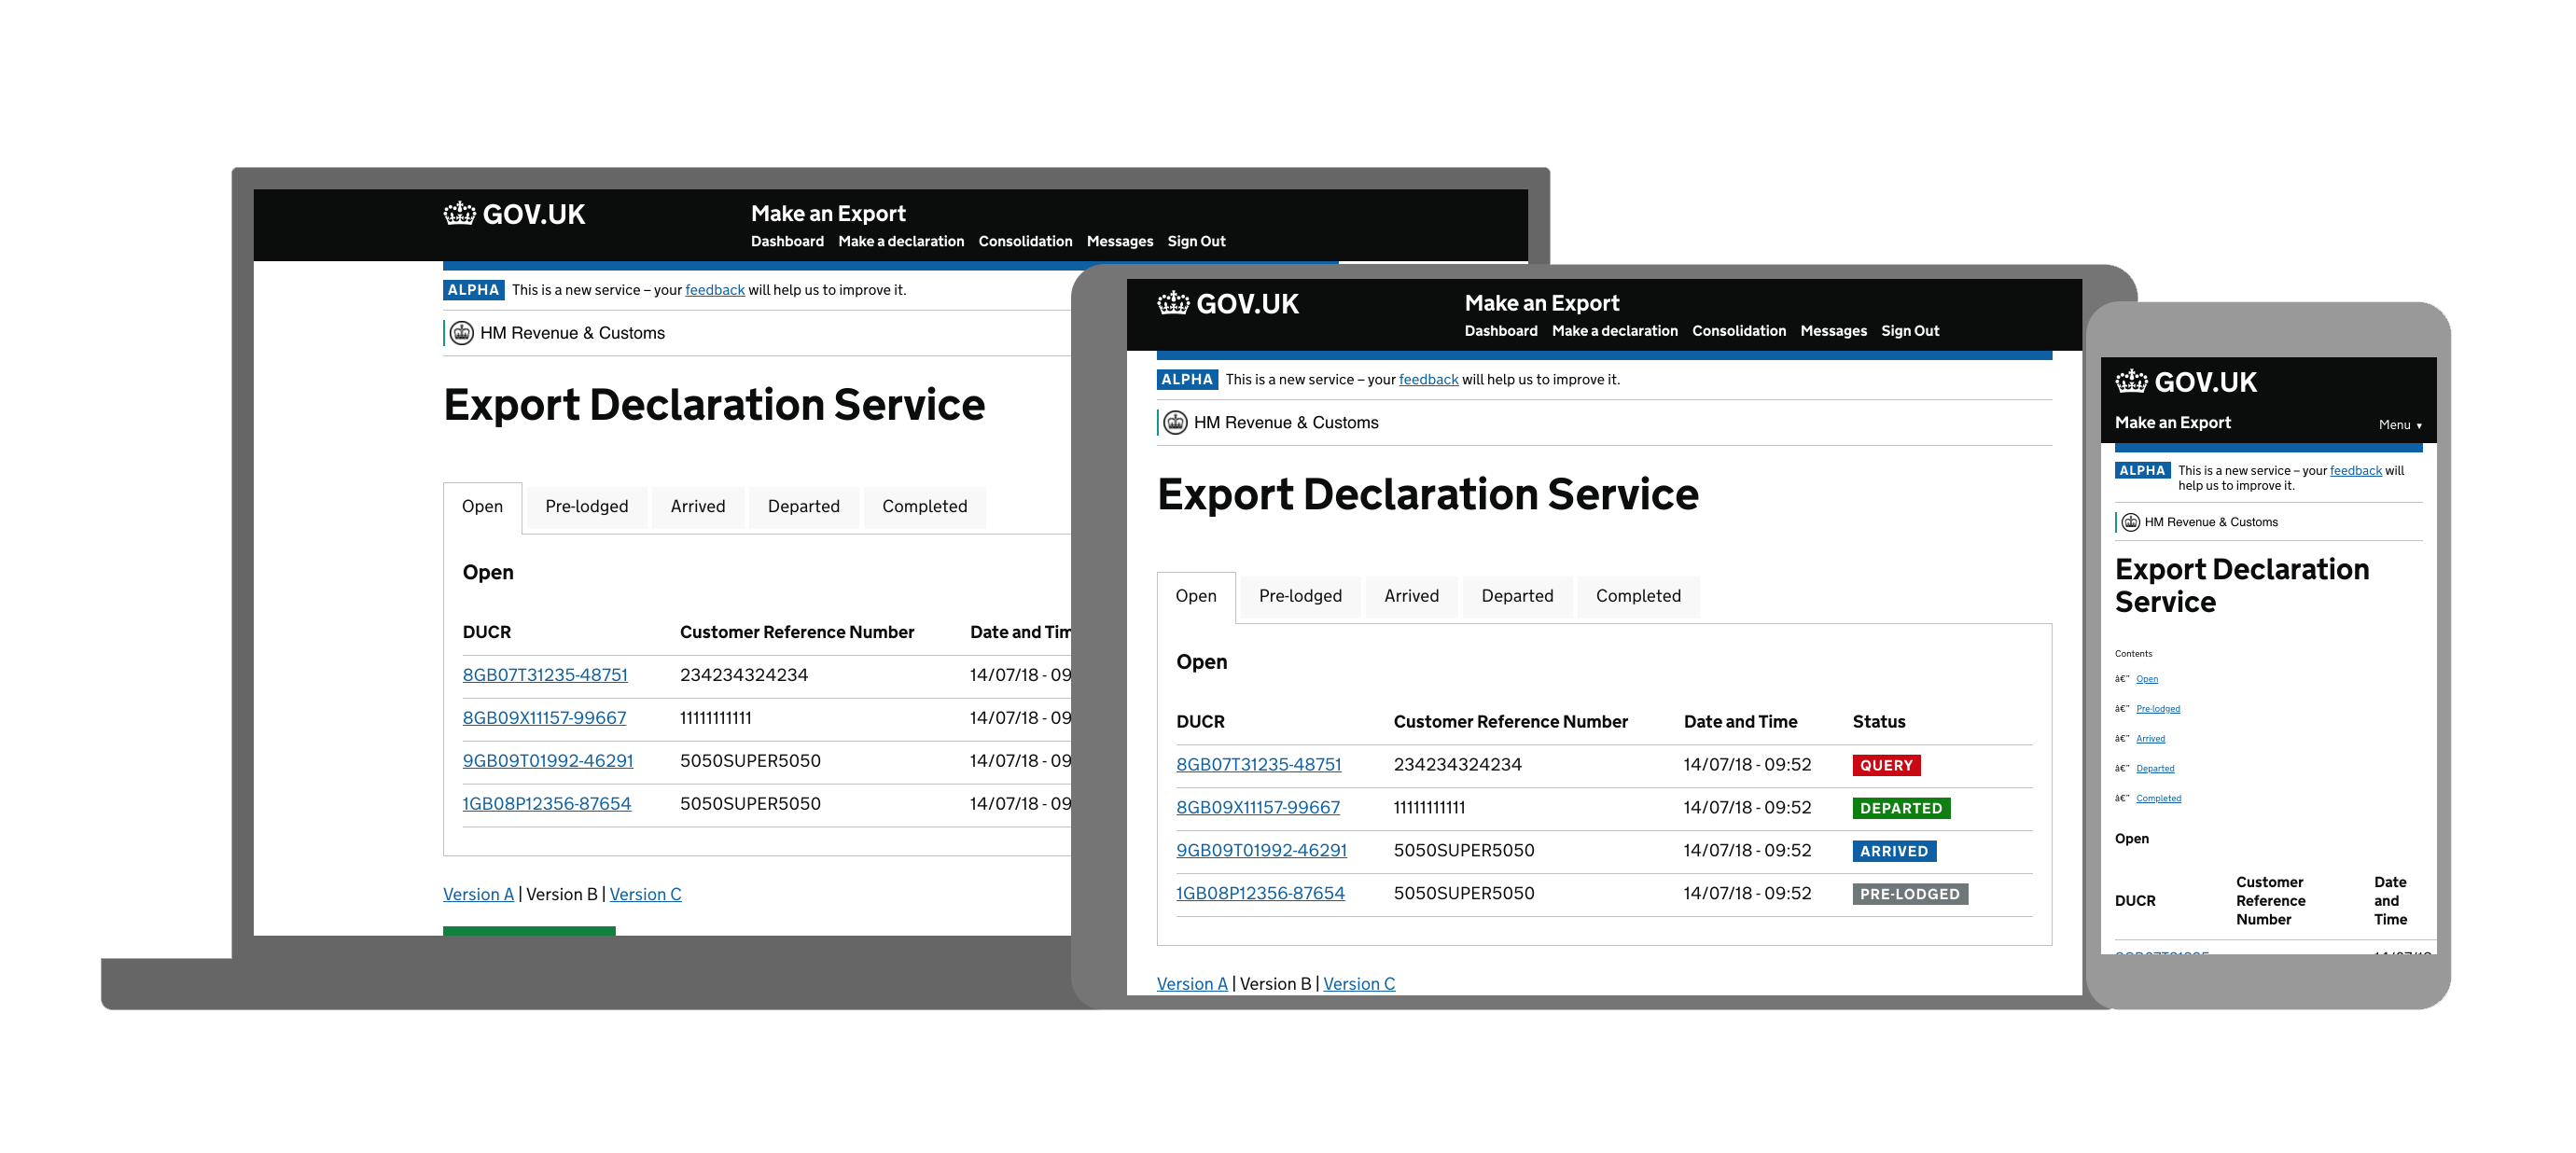 Export Declaration Service dashboard